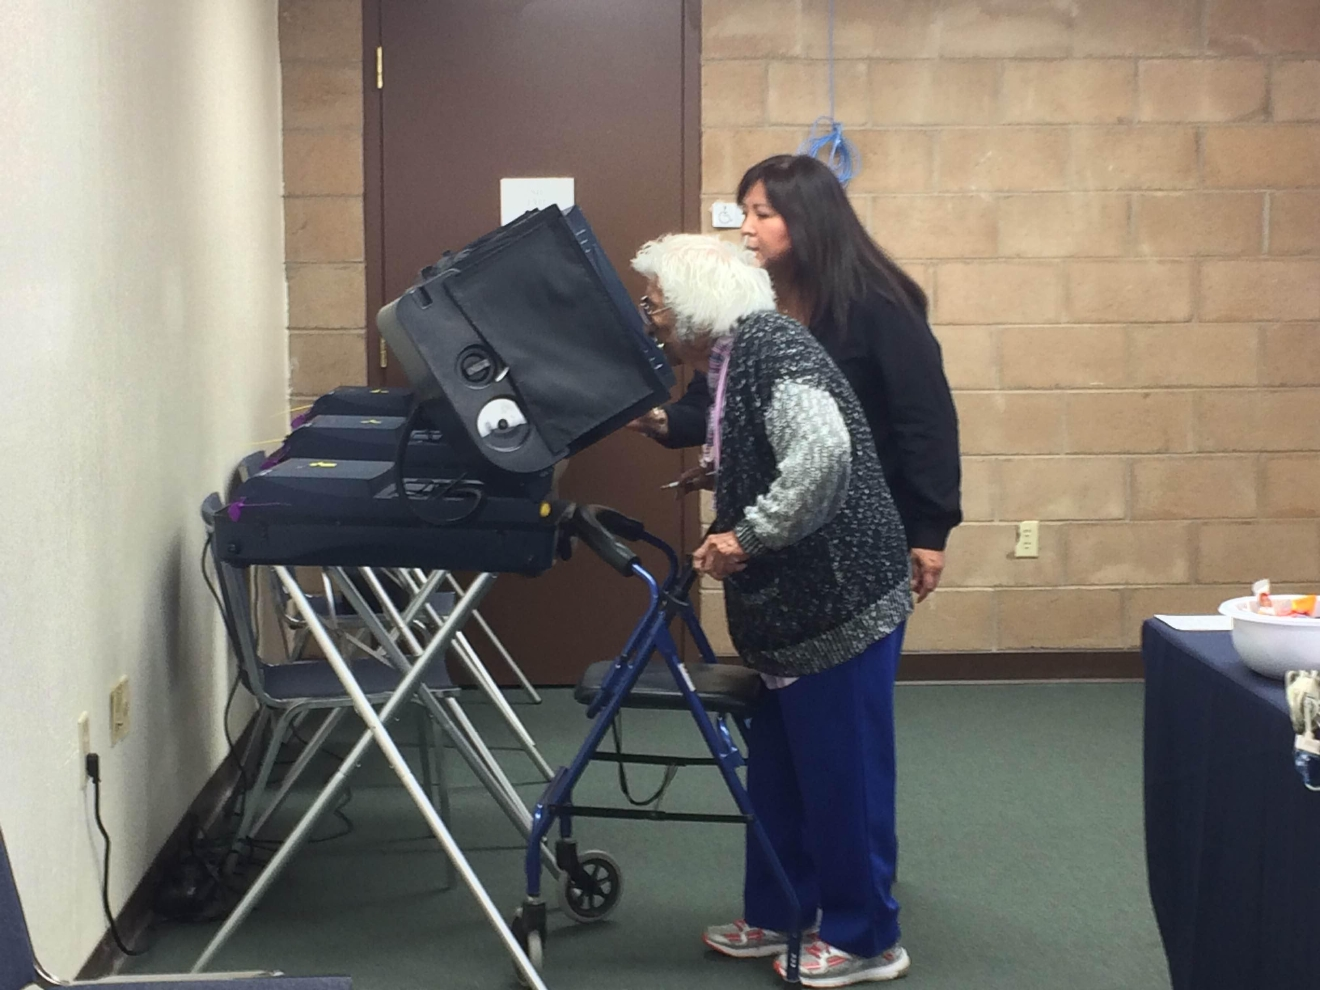 99-year-old Fora Green casts ballot.